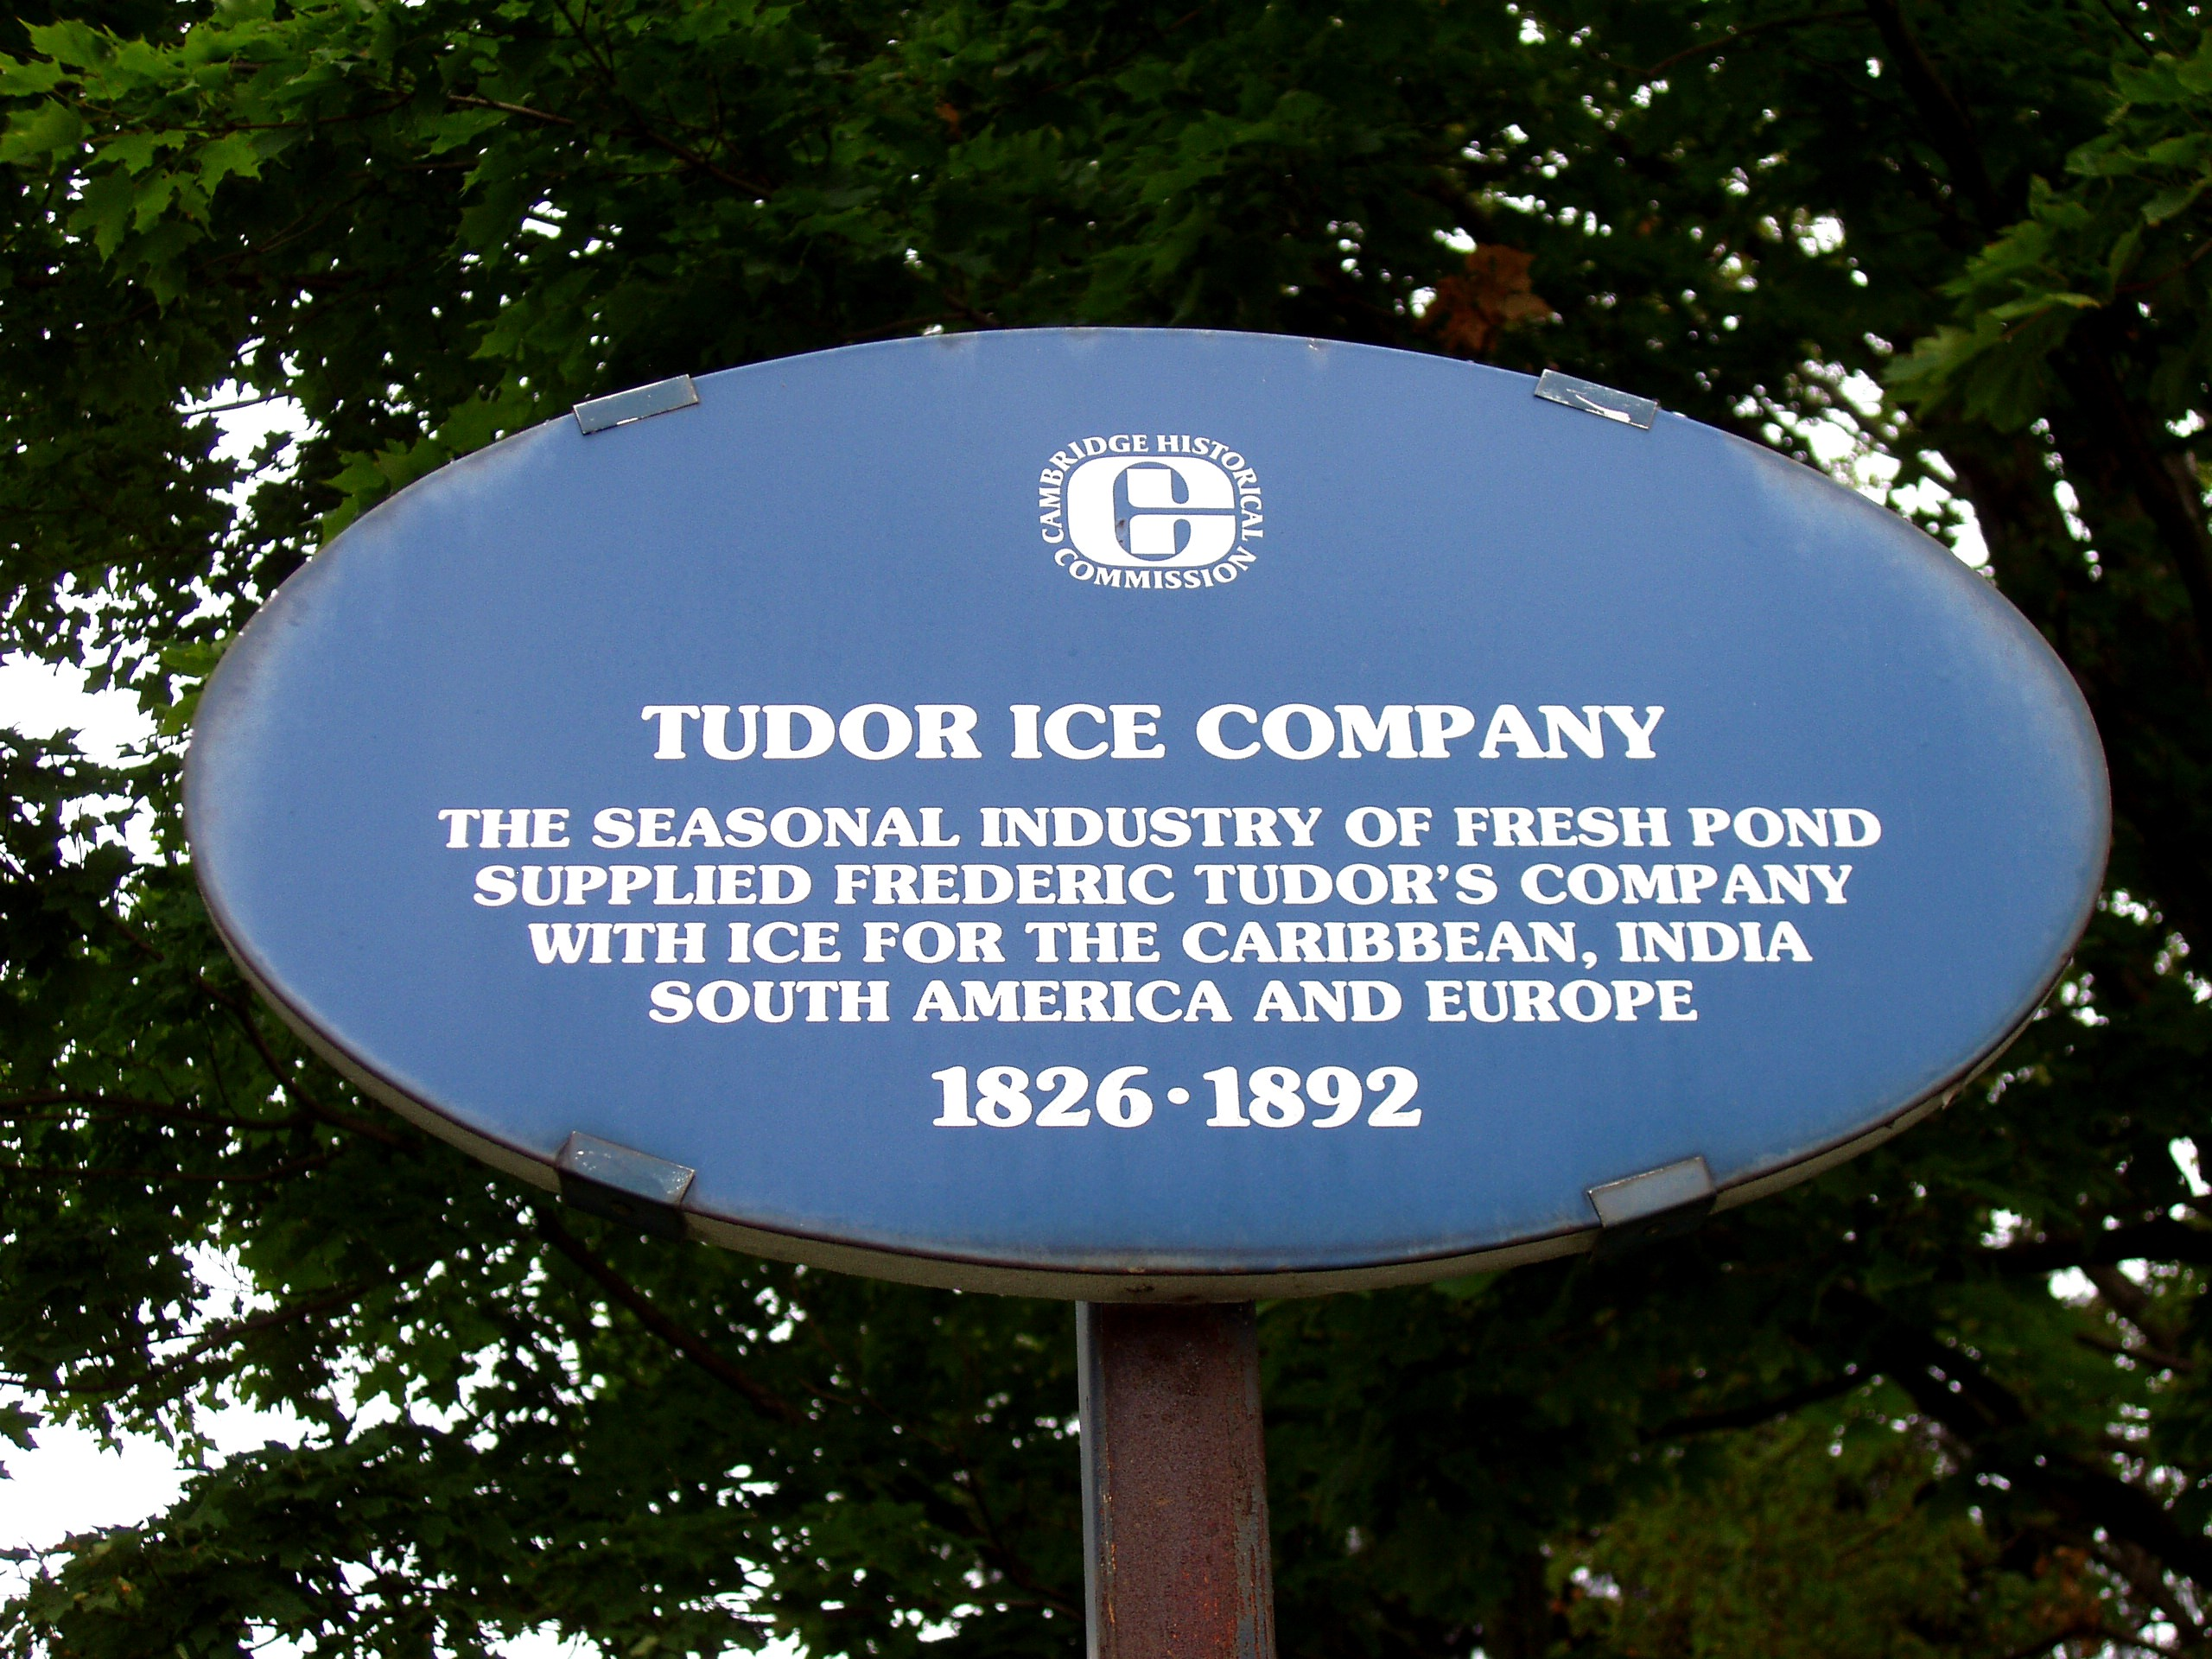 File:Tudor Ice Company - Historical Marker, Cambridge, Mass.JPG ...